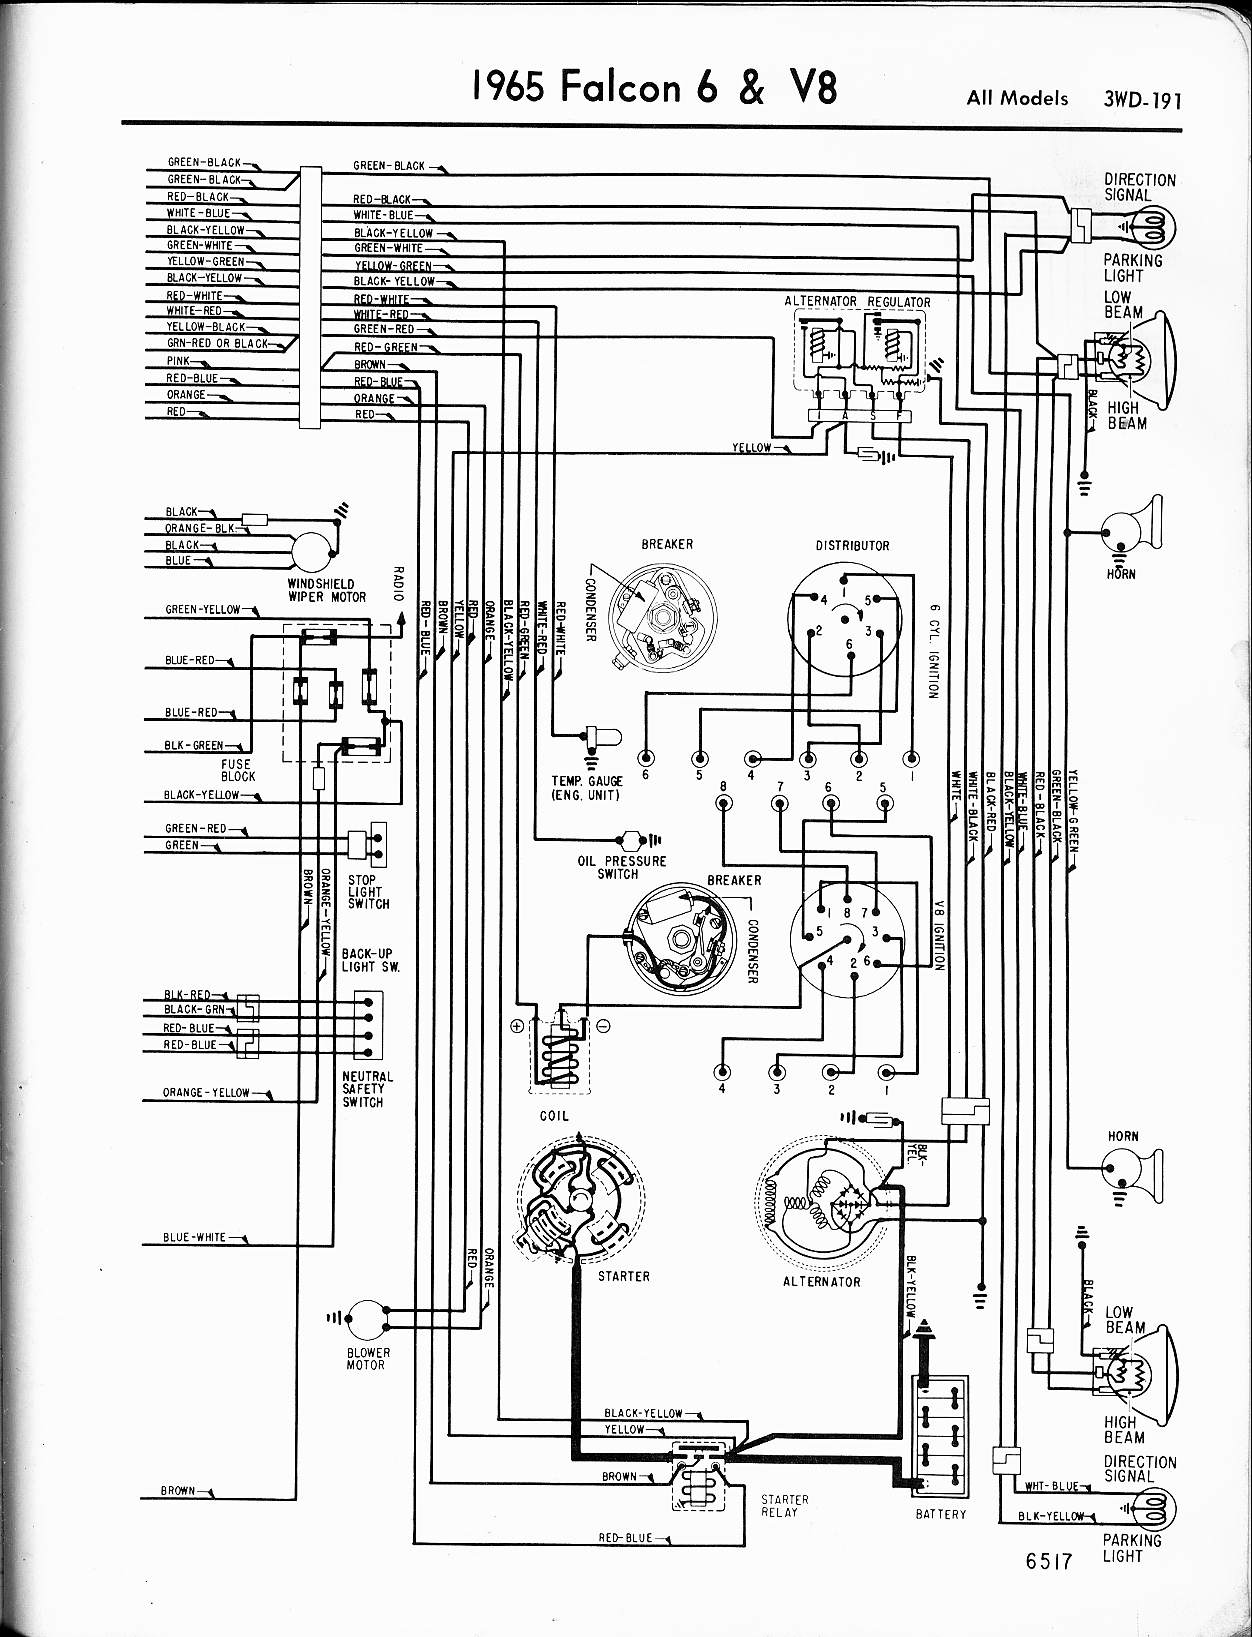 MWire5765 191 engine wire diagram for 65 falcon 65 falcon hot rod \u2022 wiring 65 ford f100 wiring diagram at webbmarketing.co